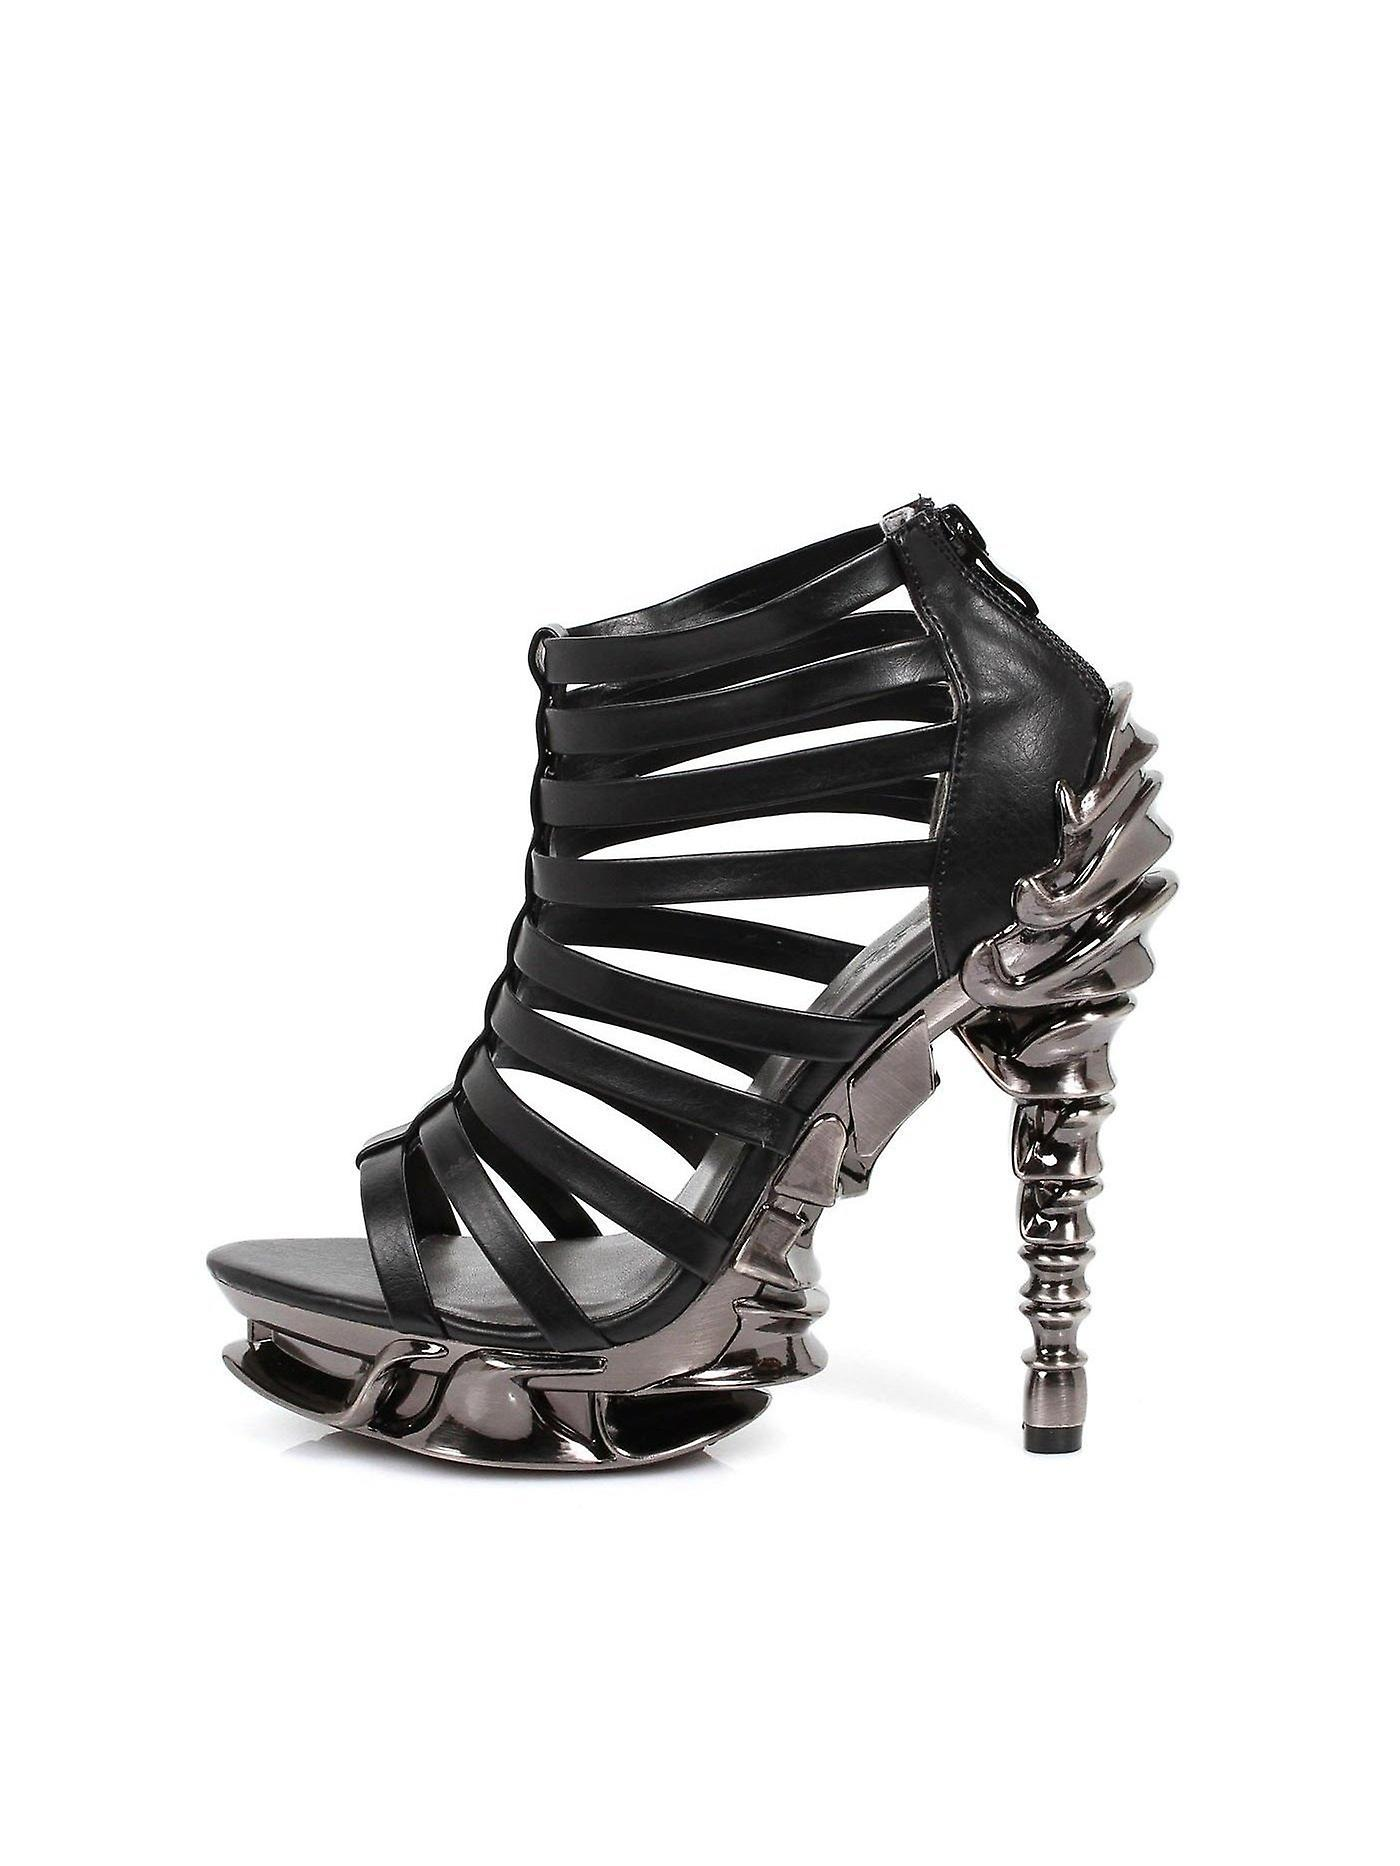 Hades Shoes H-Nix strappy high-heeled 5 inch sandal